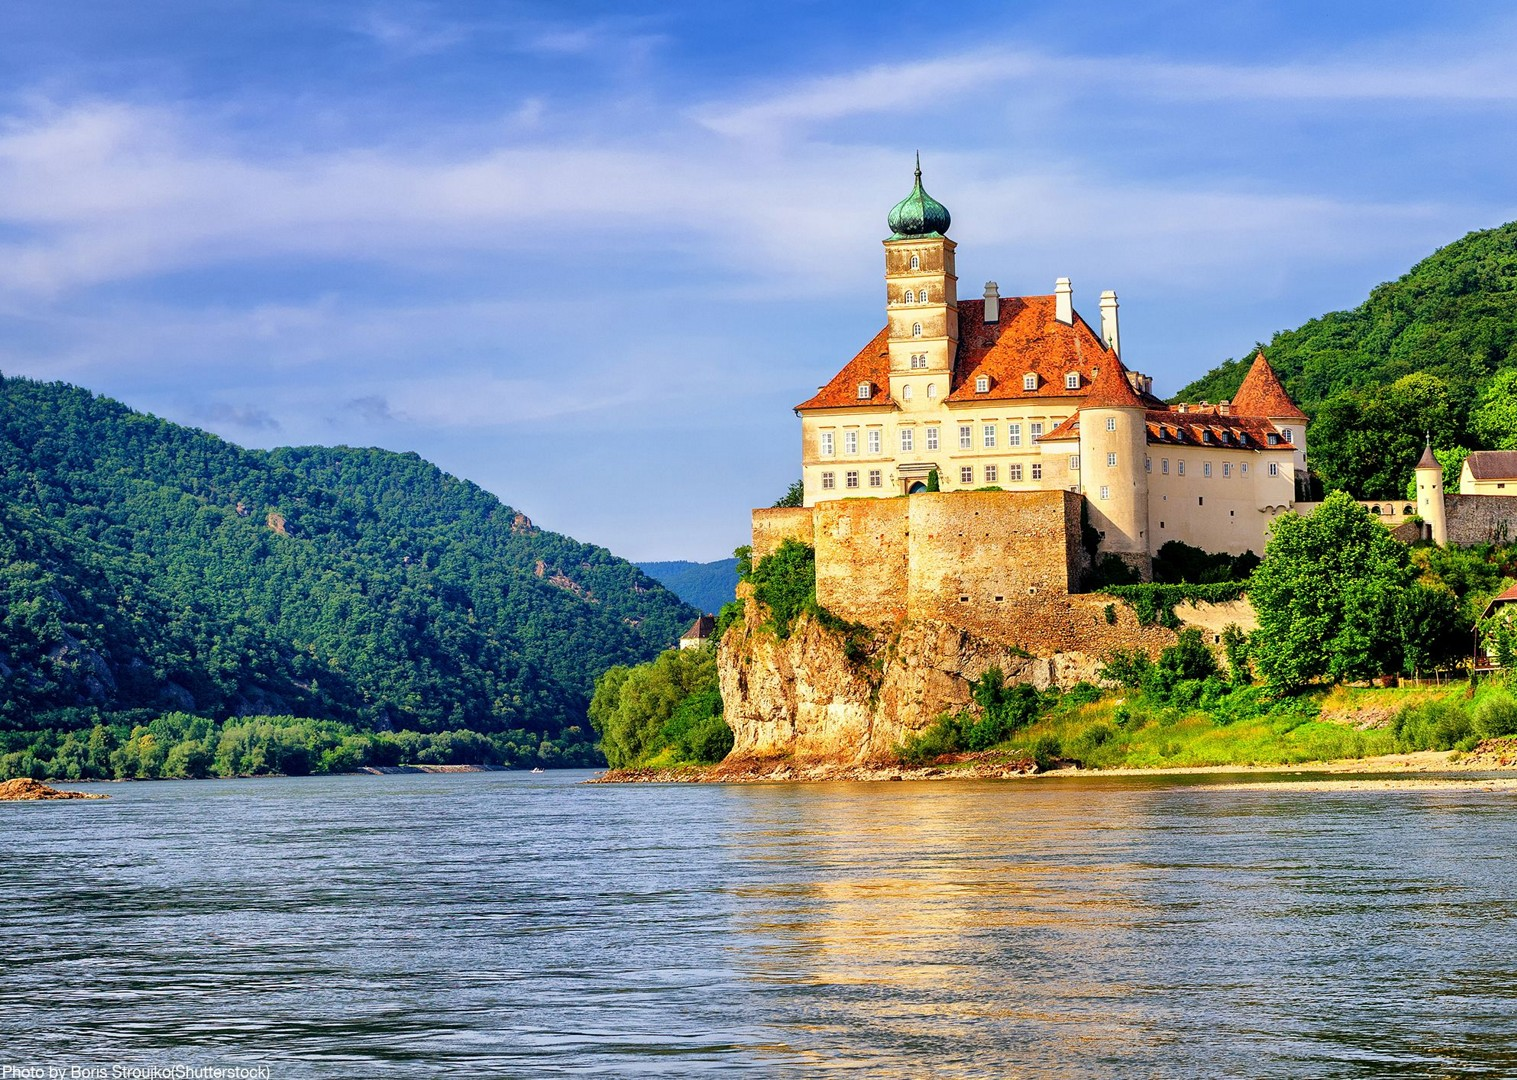 schonbuehel-castle-danube-cycle-path-austria-family-tour-saddle-skedaddle.jpg - Austria - Blue Danube - Linz to Vienna - Family Cycling